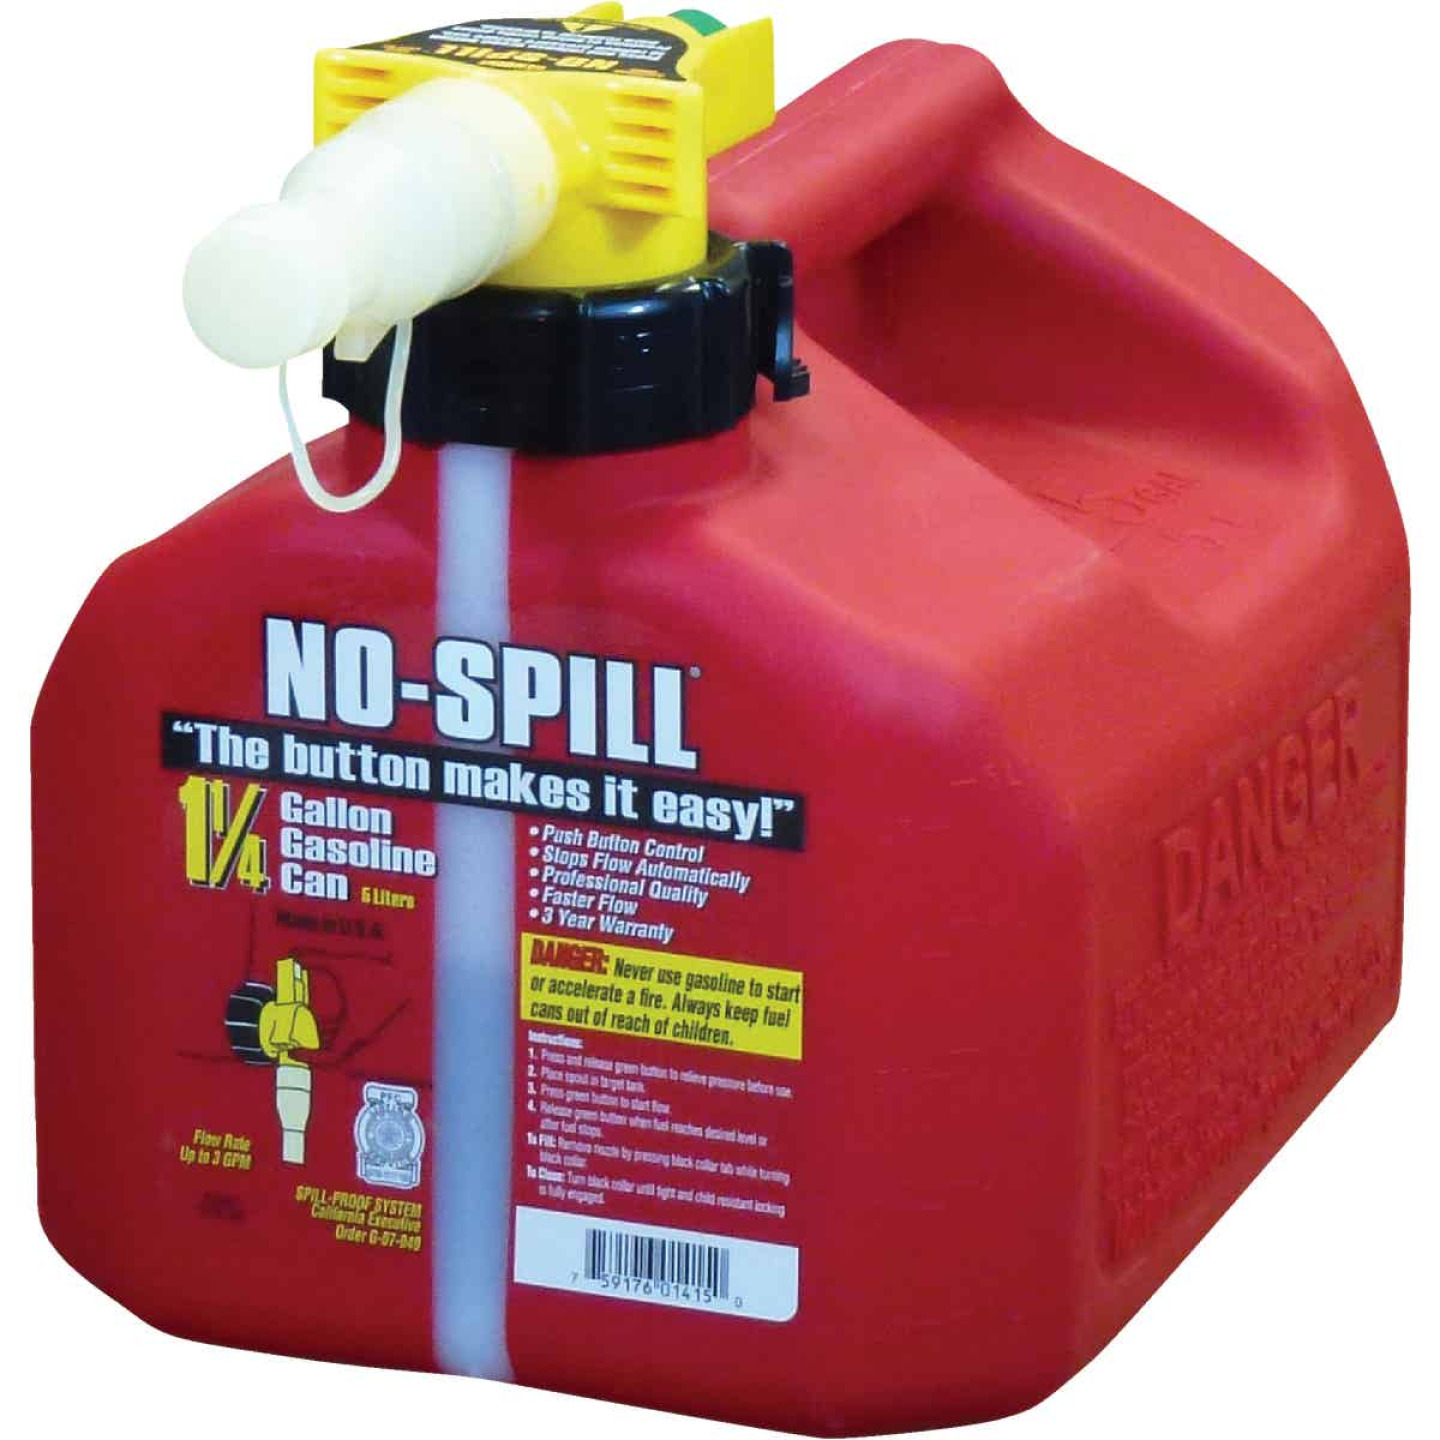 No-Spill 1-1/4 Gal. Plastic Gasoline Fuel Can, Red Image 1